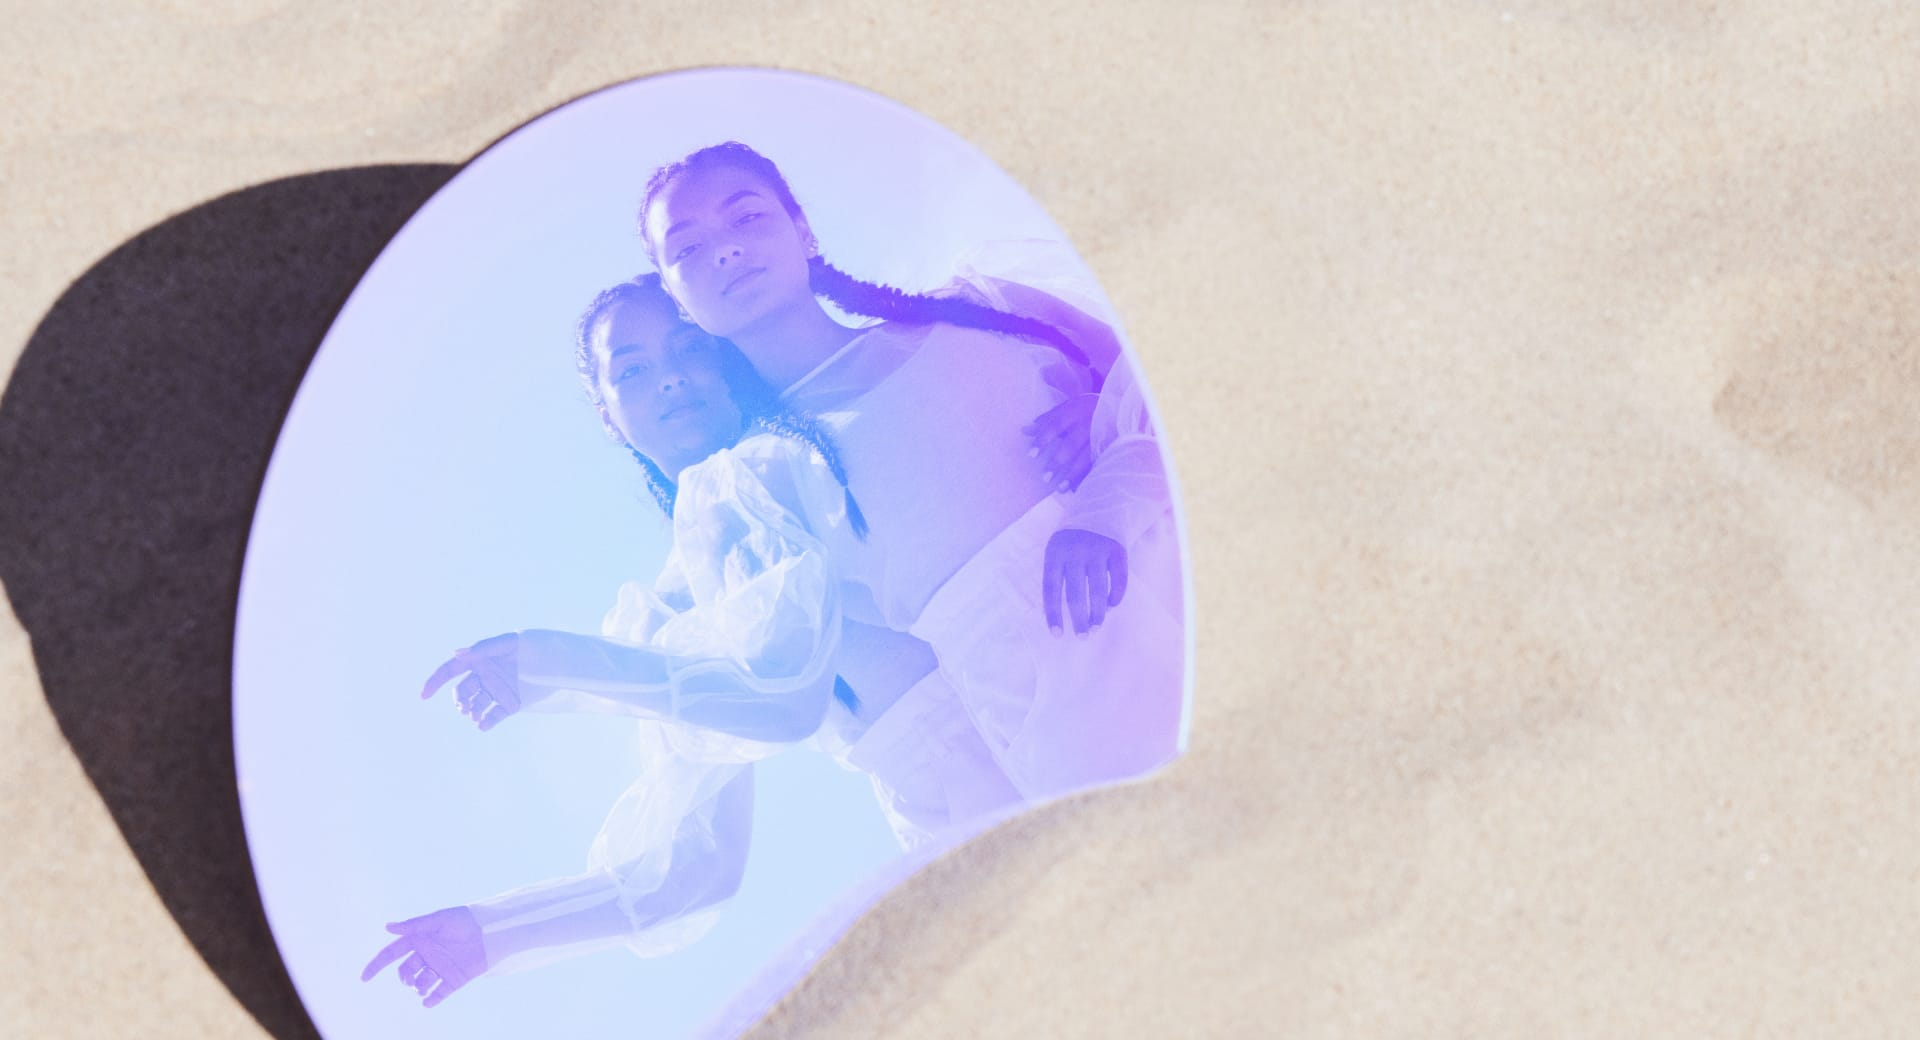 Prismatic reflection of twin sisters from a mirror in the sand | Kinship